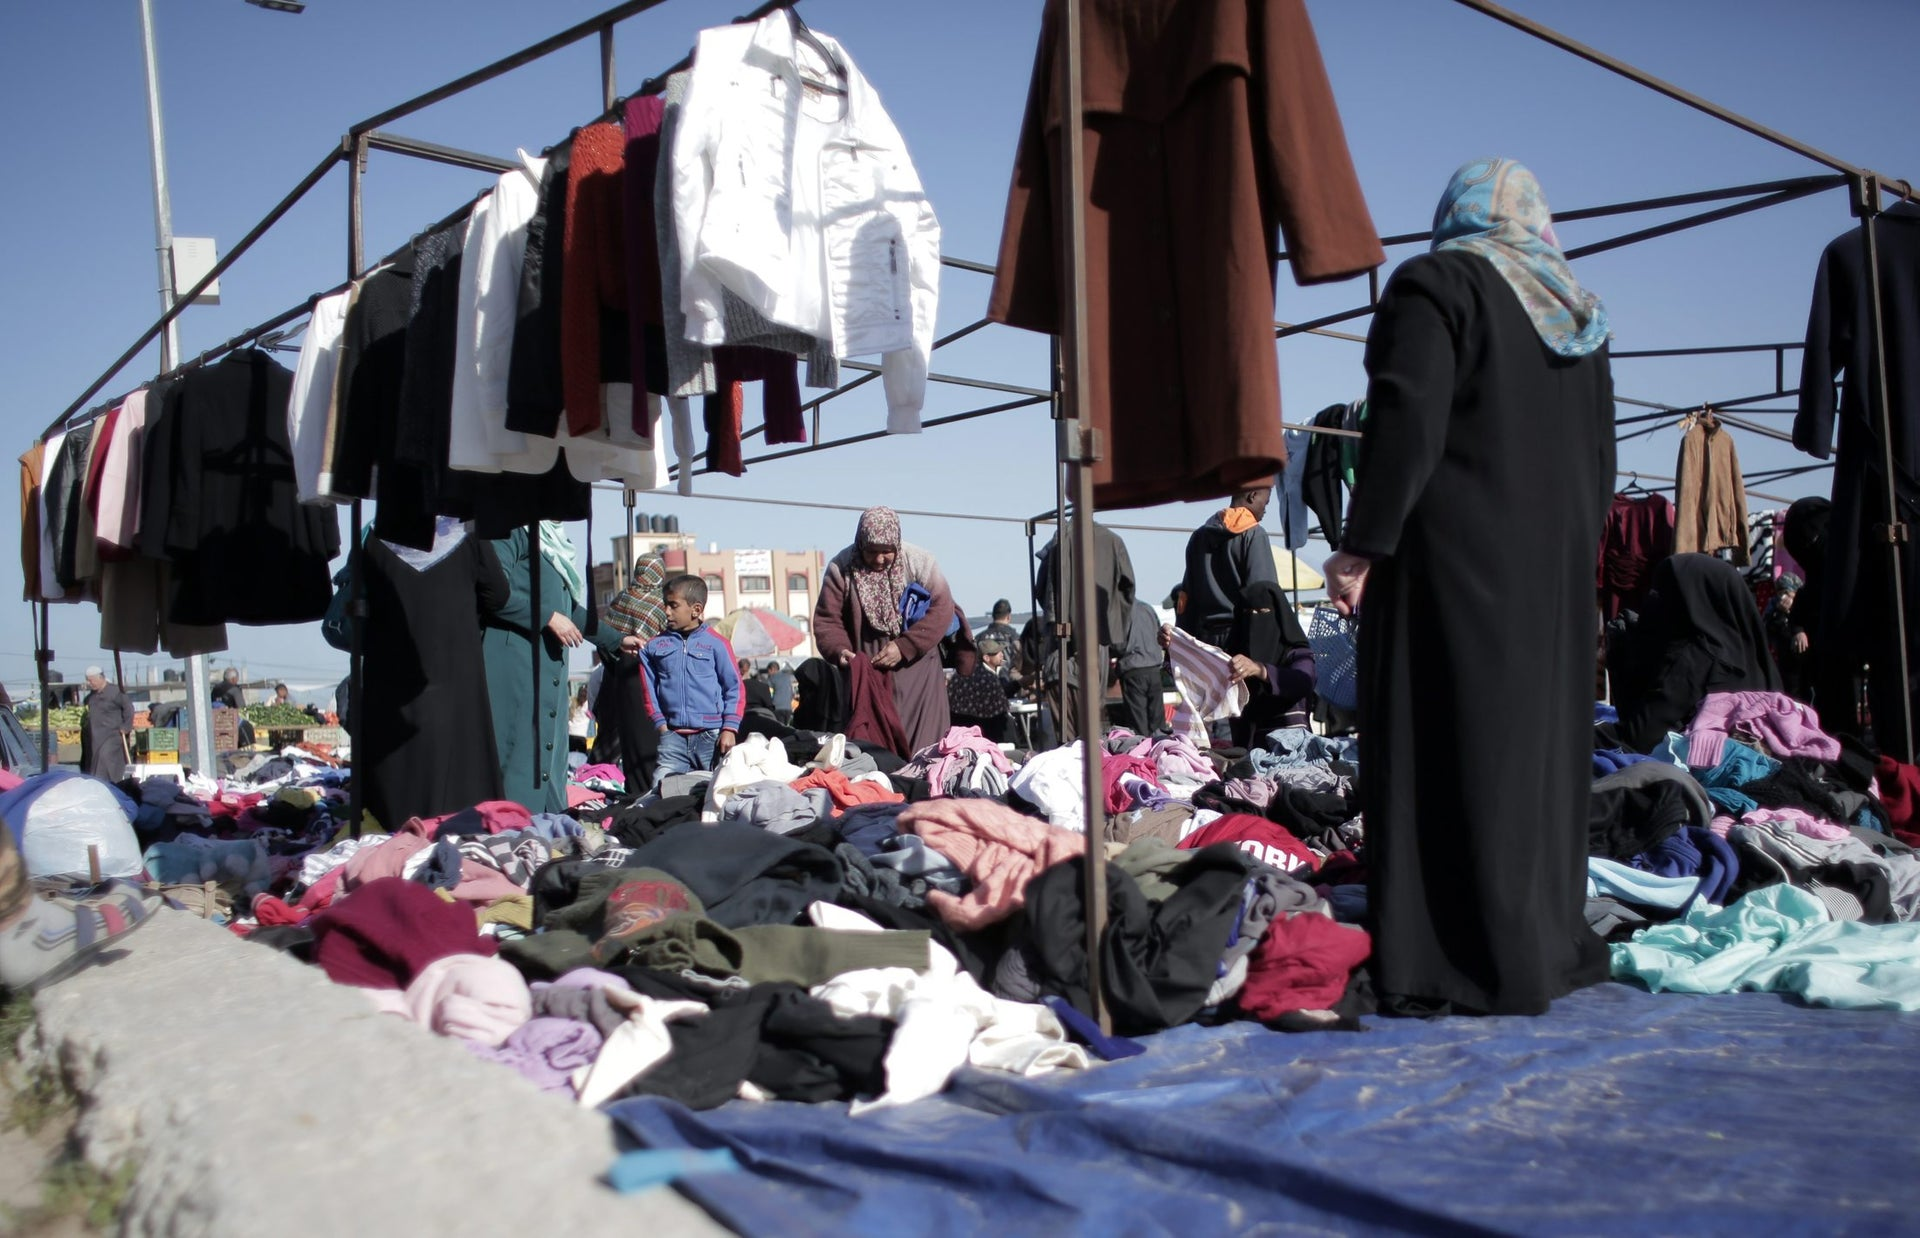 Palestinian women sift through used clothing at the weekly flea market in Nusseirat refugee camp, central Gaza Strip,  Feb. 15, 2016.